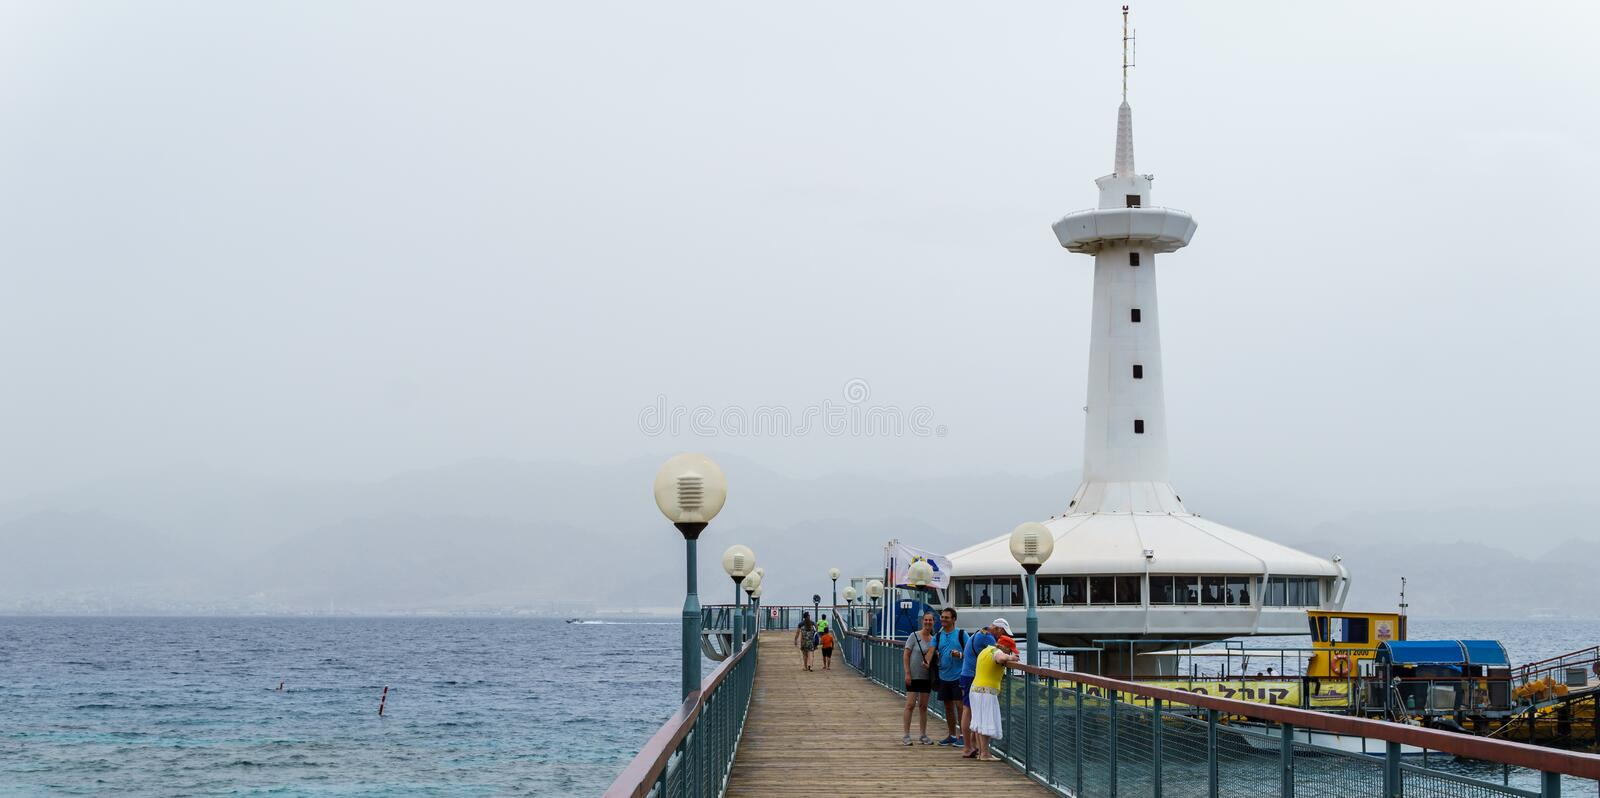 EILAT, ISRAEL - March 28, 2018: The Underwater Observatory Marine Park at a coast near Eilat, Israel. stock photo